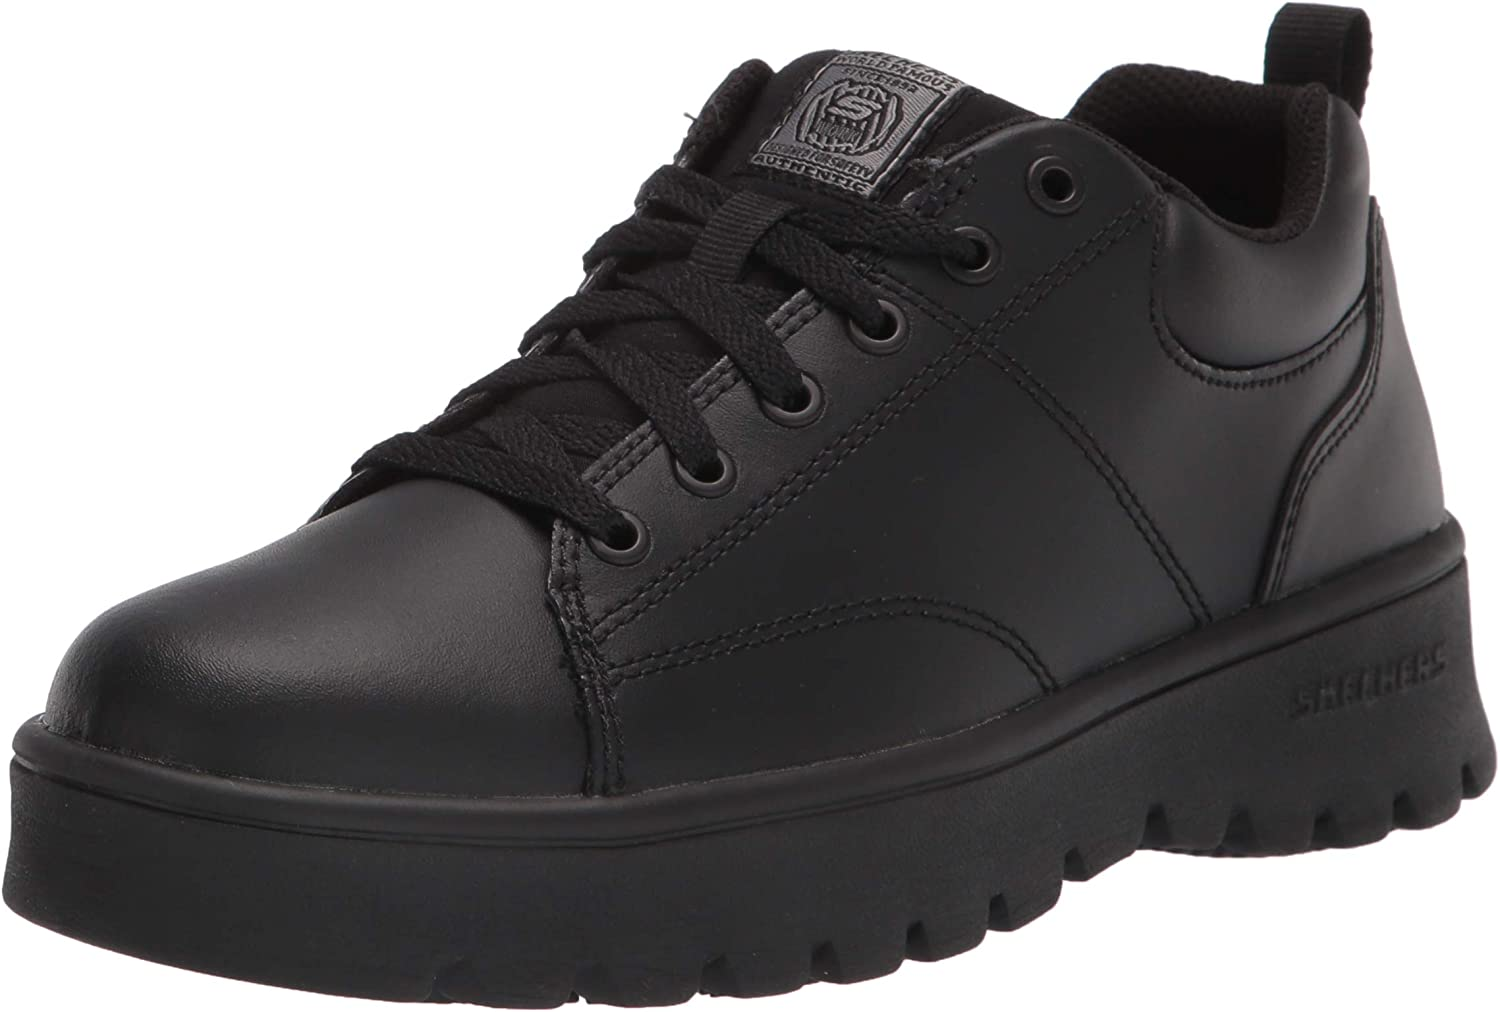 Skechers Women's Padded Collar Lace Up Food Service Shoe